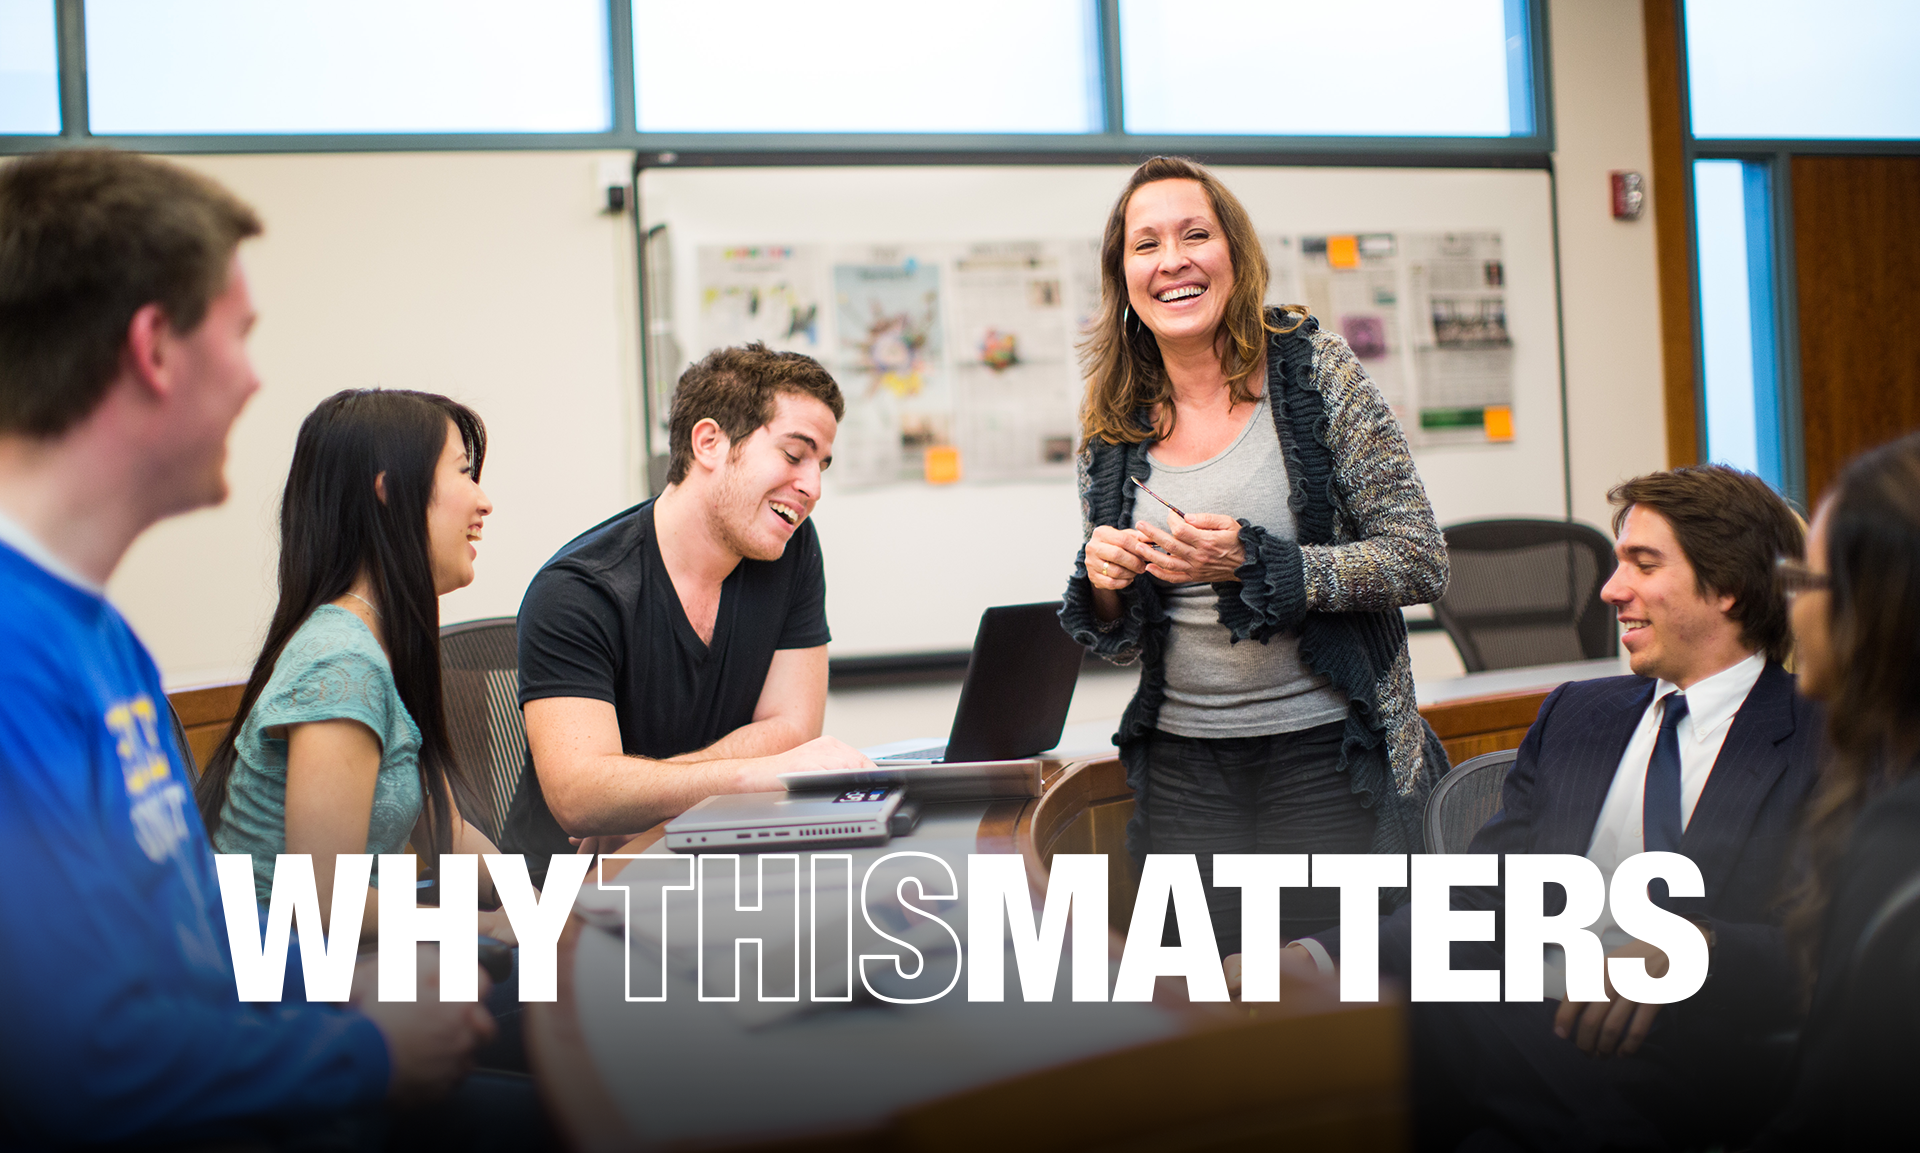 Why This Matters logo over image of students and professor laughing in classroom